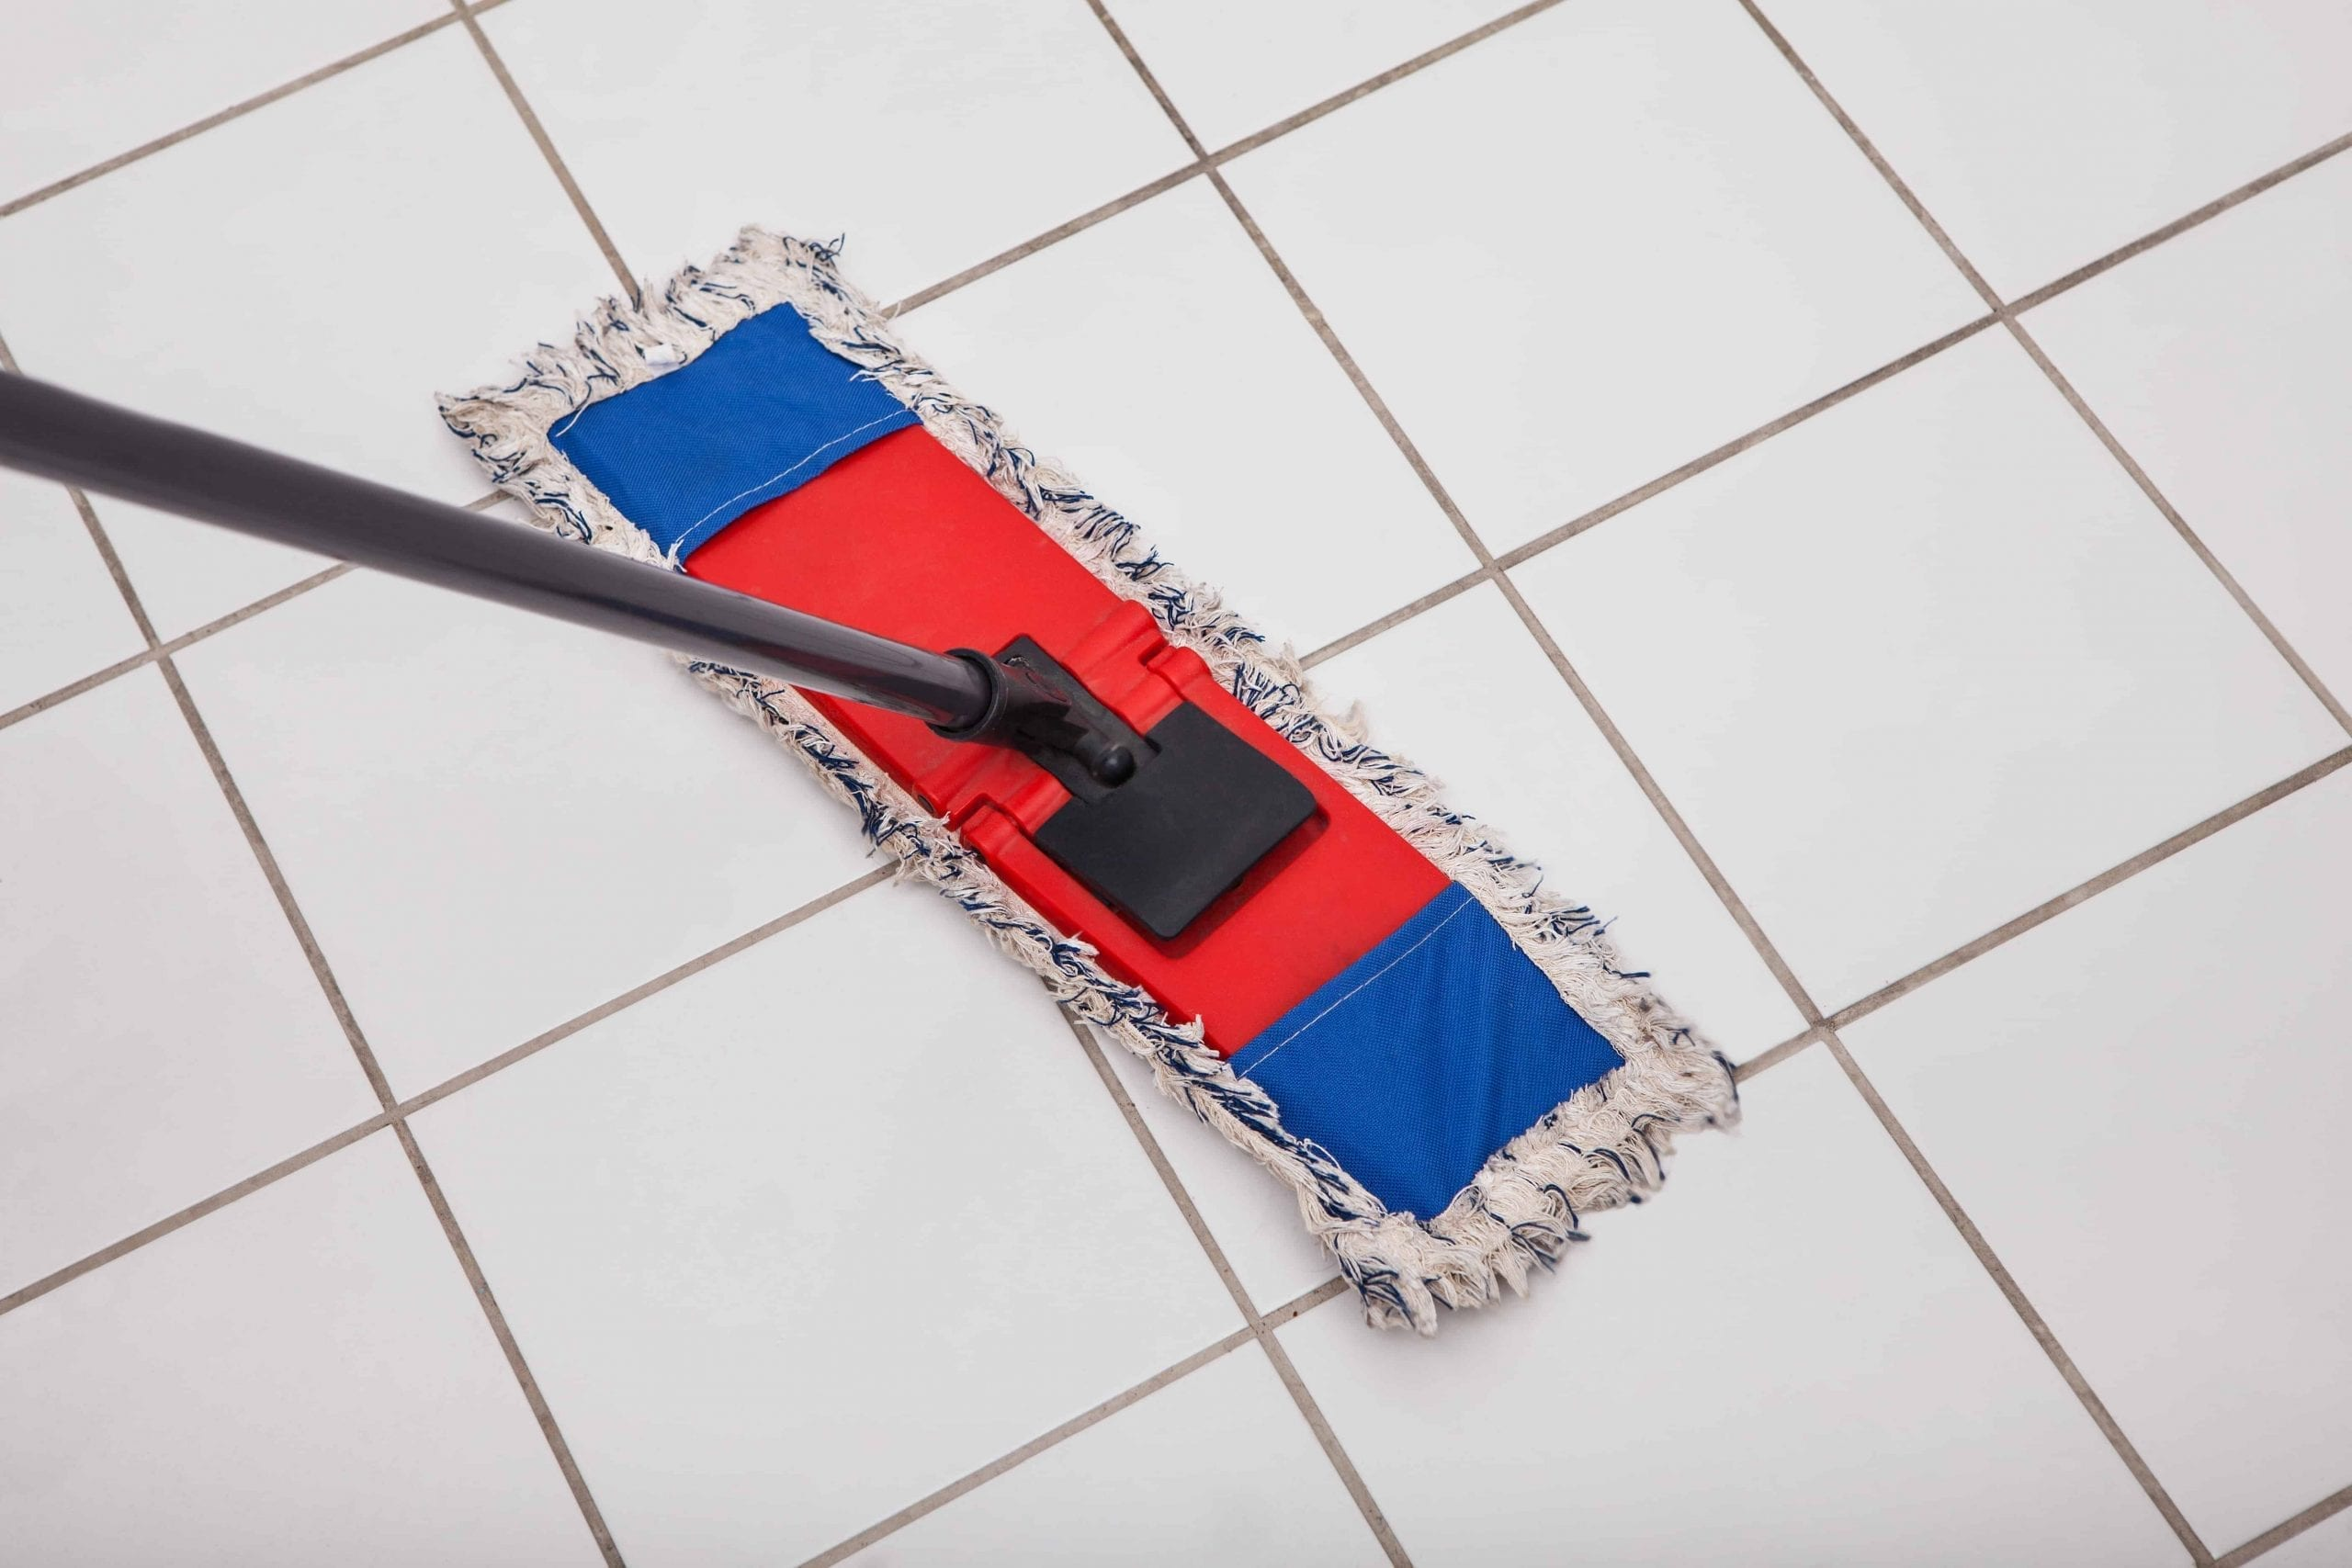 10 Tidy Mops for Tile Reviews — Clean Up in 2021